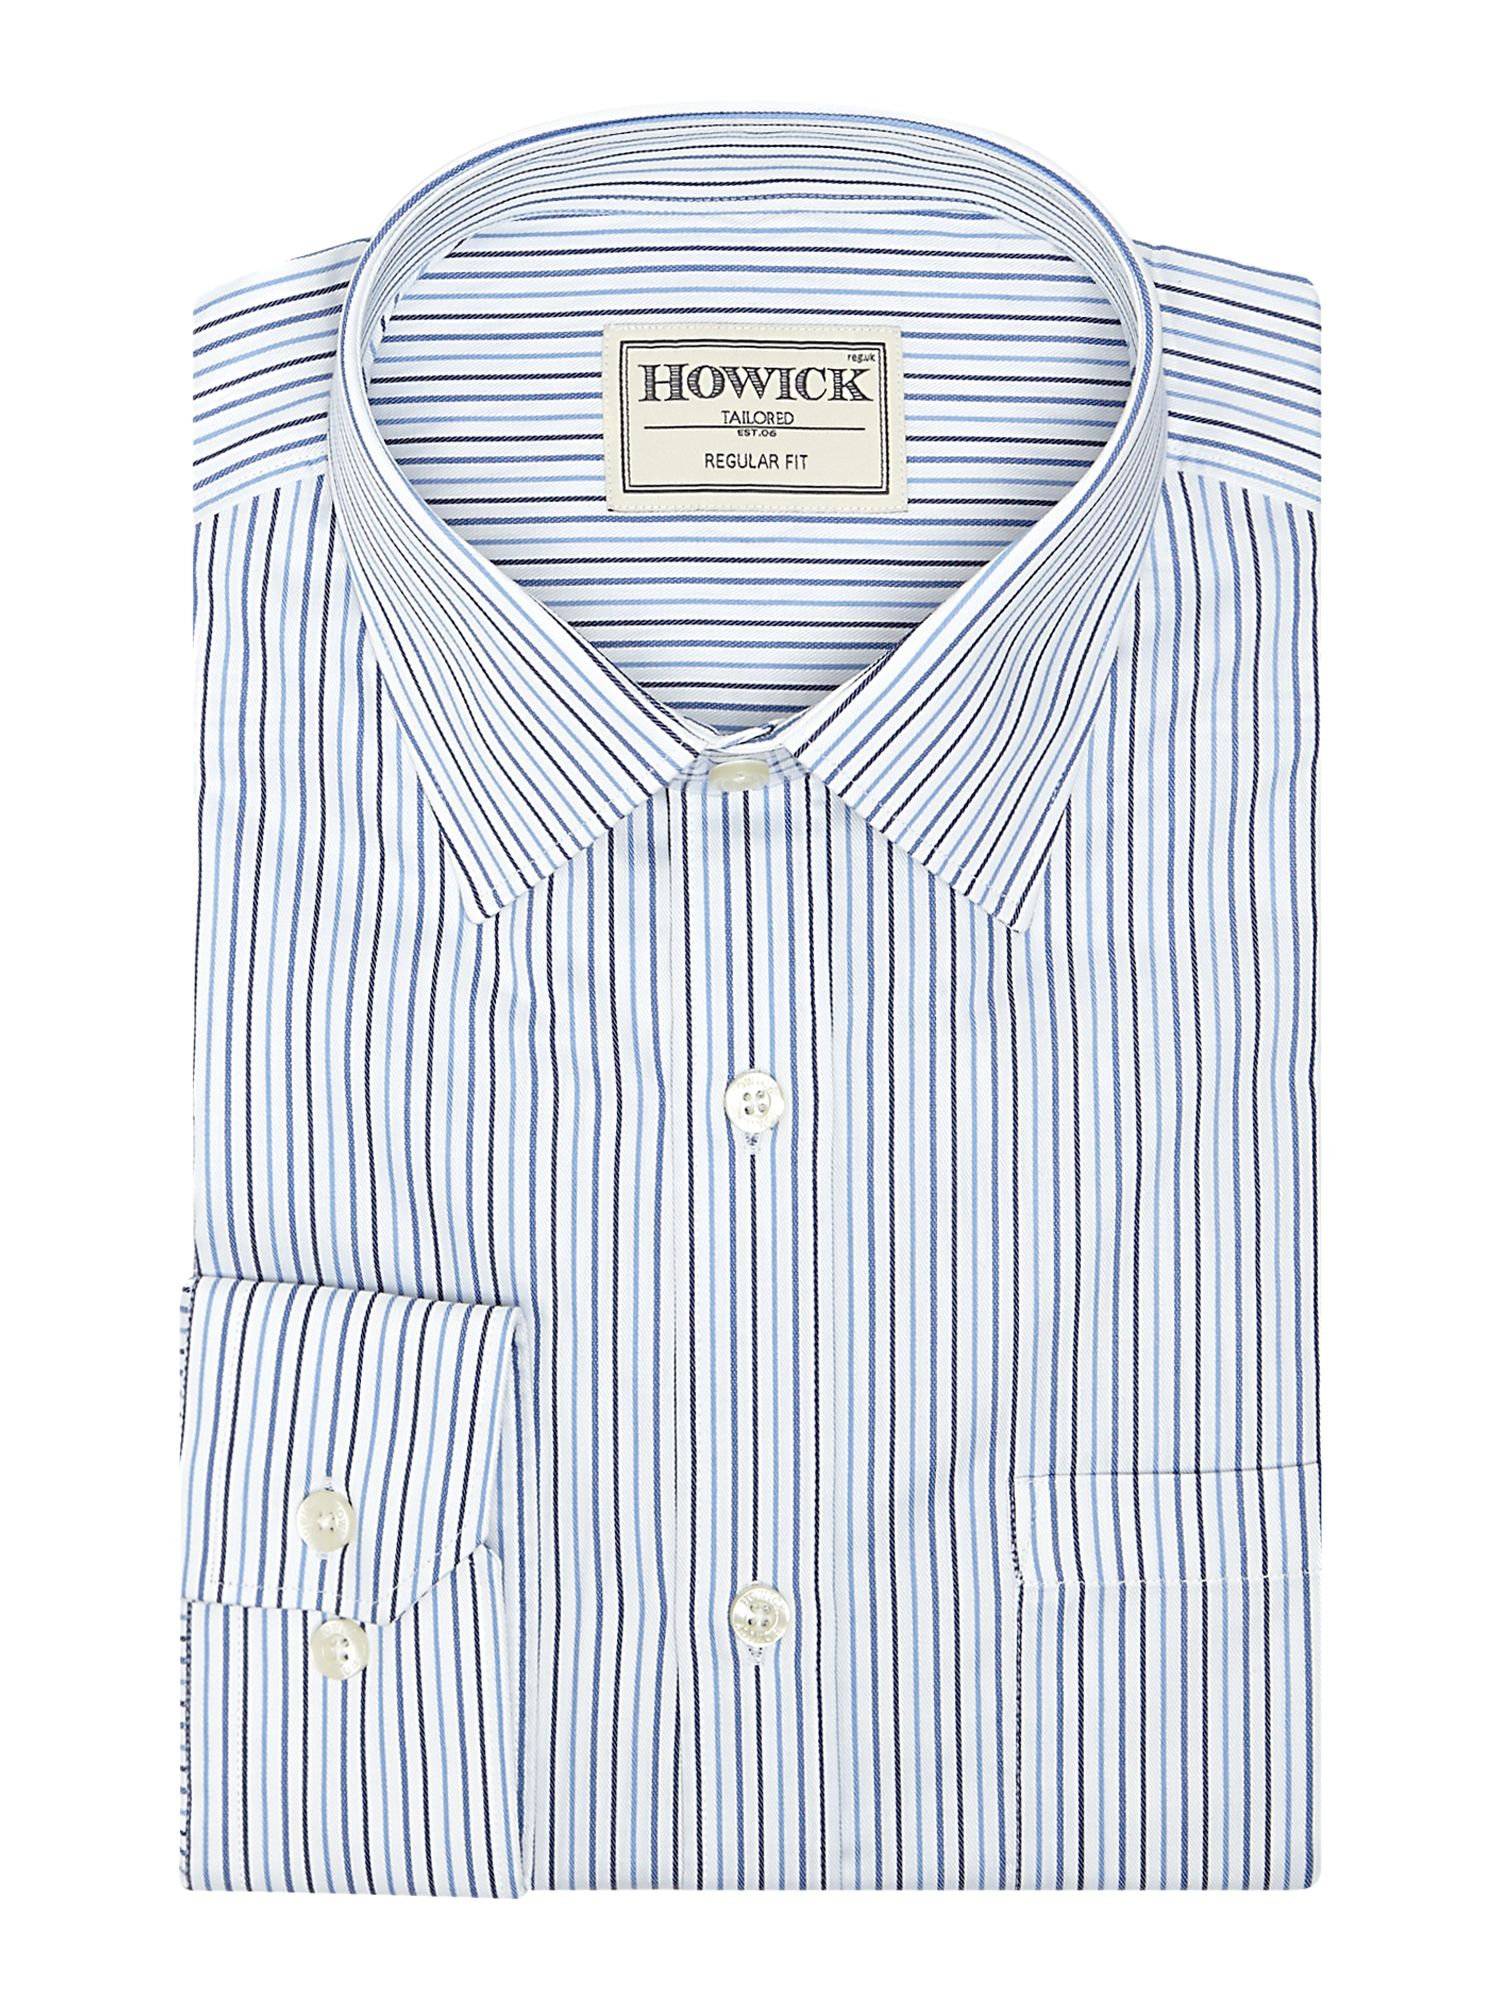 Roslindale multi stripe shirt with pocket